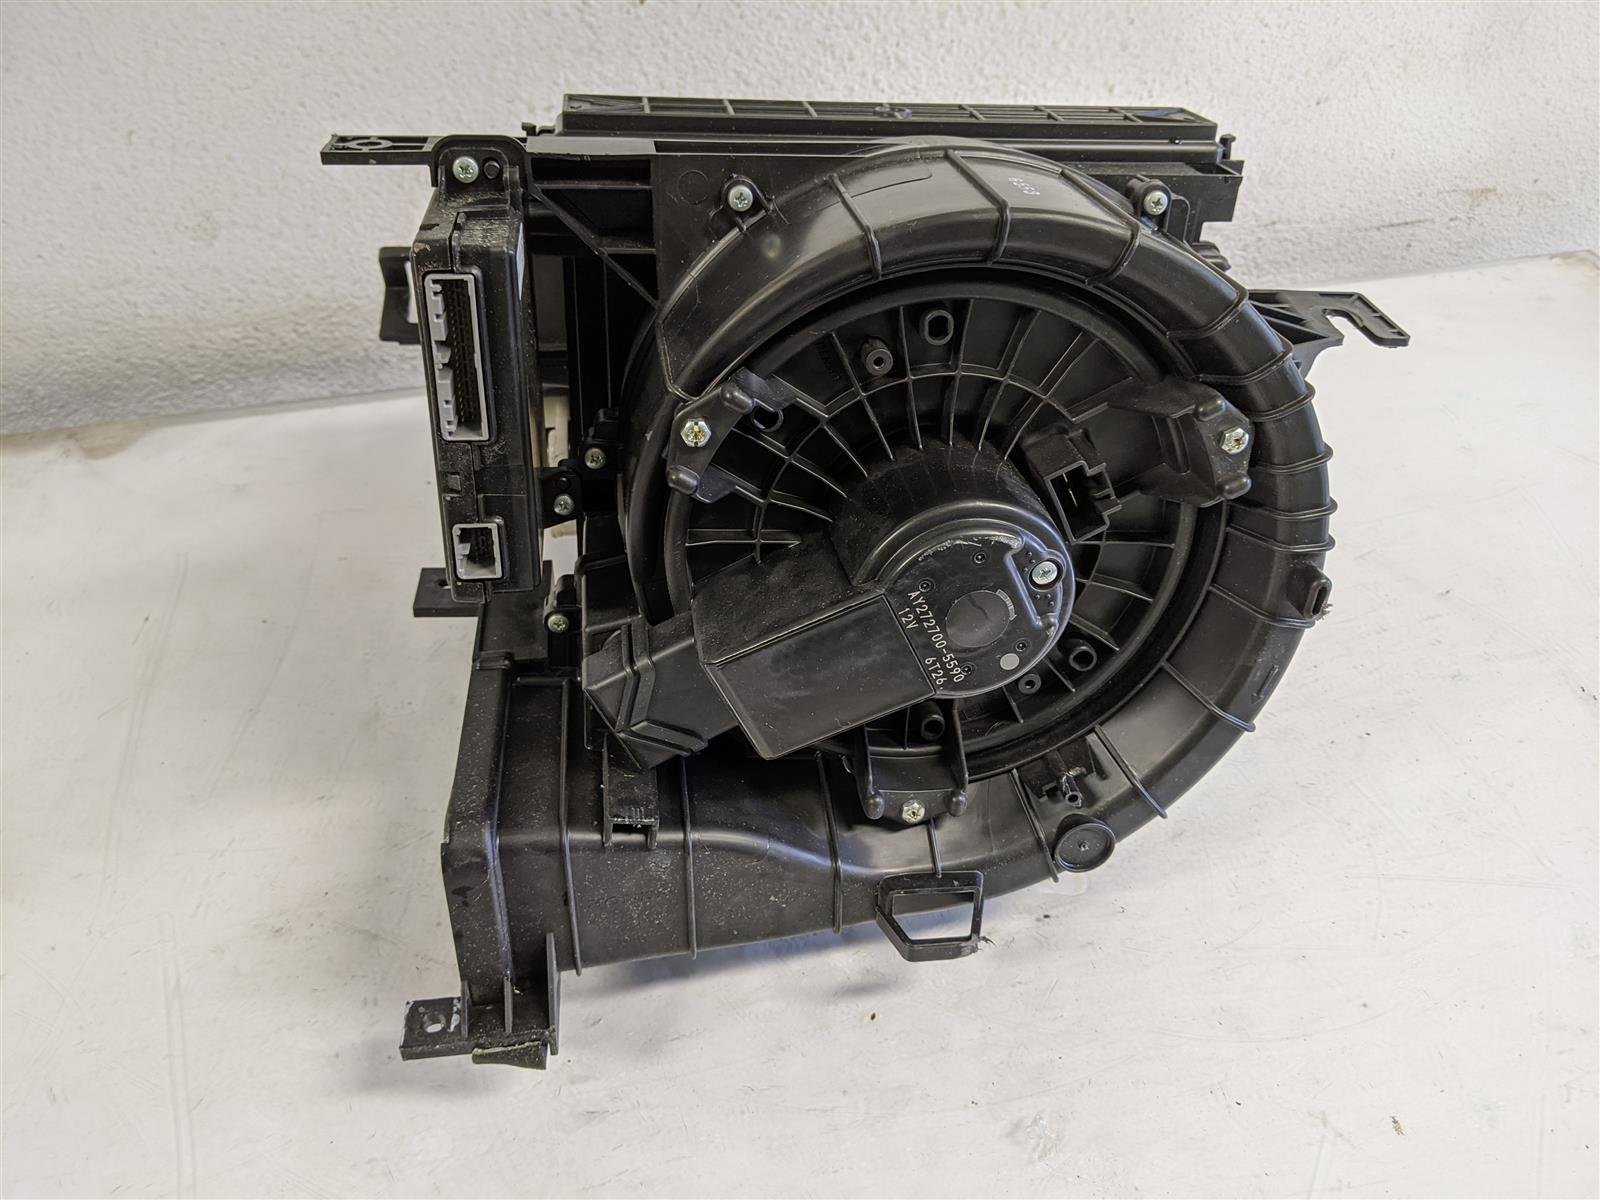 2017 Acura TLX Blower Motor Assembly Replacement